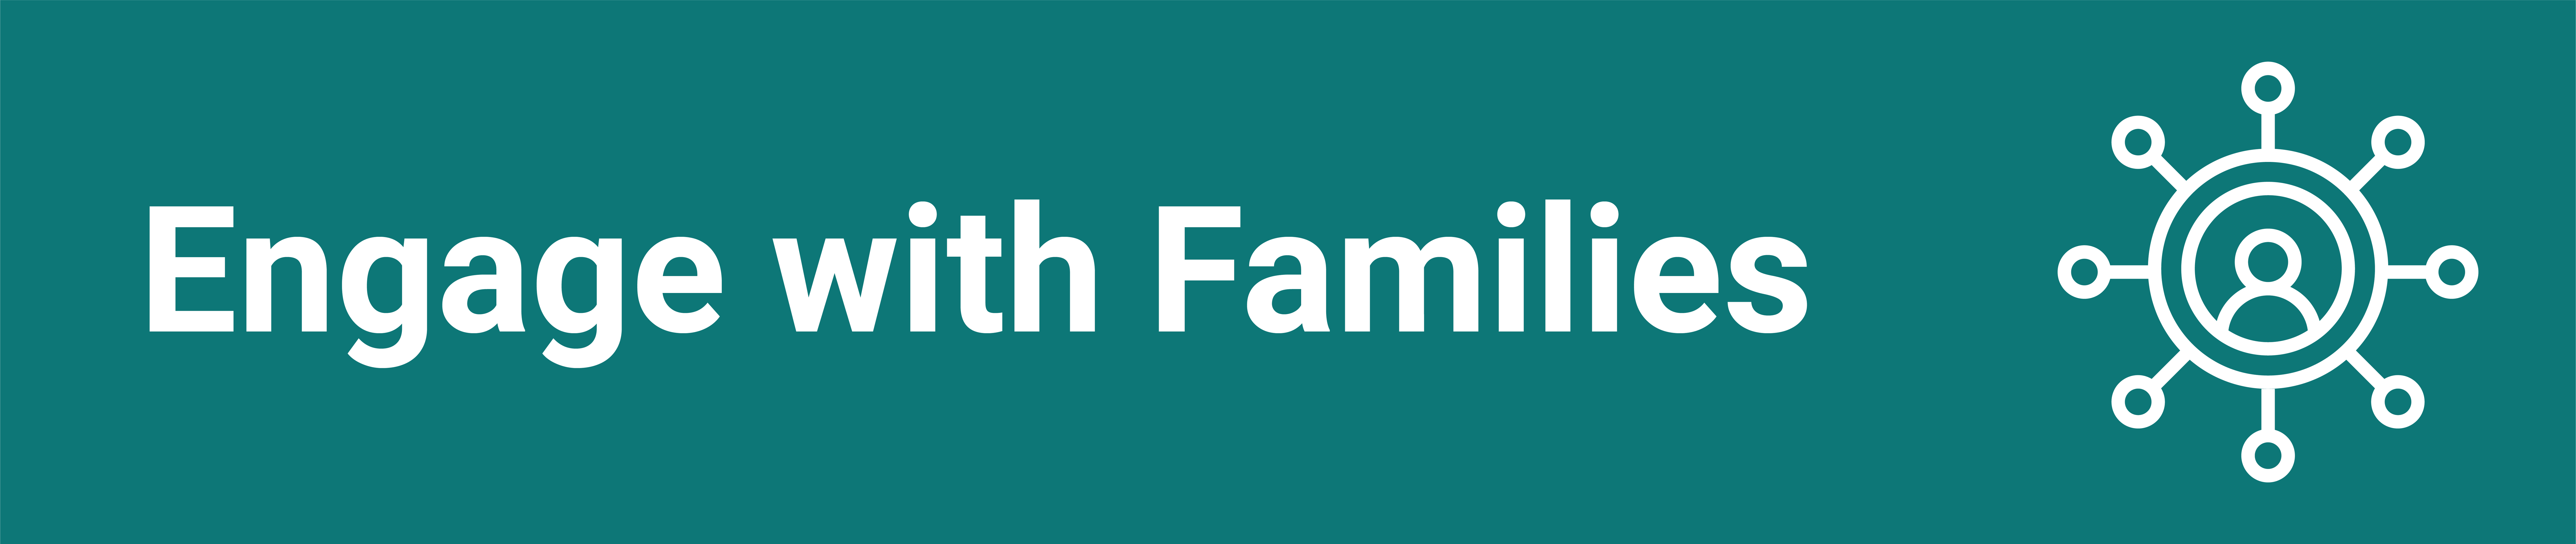 Teal background with an icon of a person in a circle connected to several smaller circles and the words Engage with Families in white